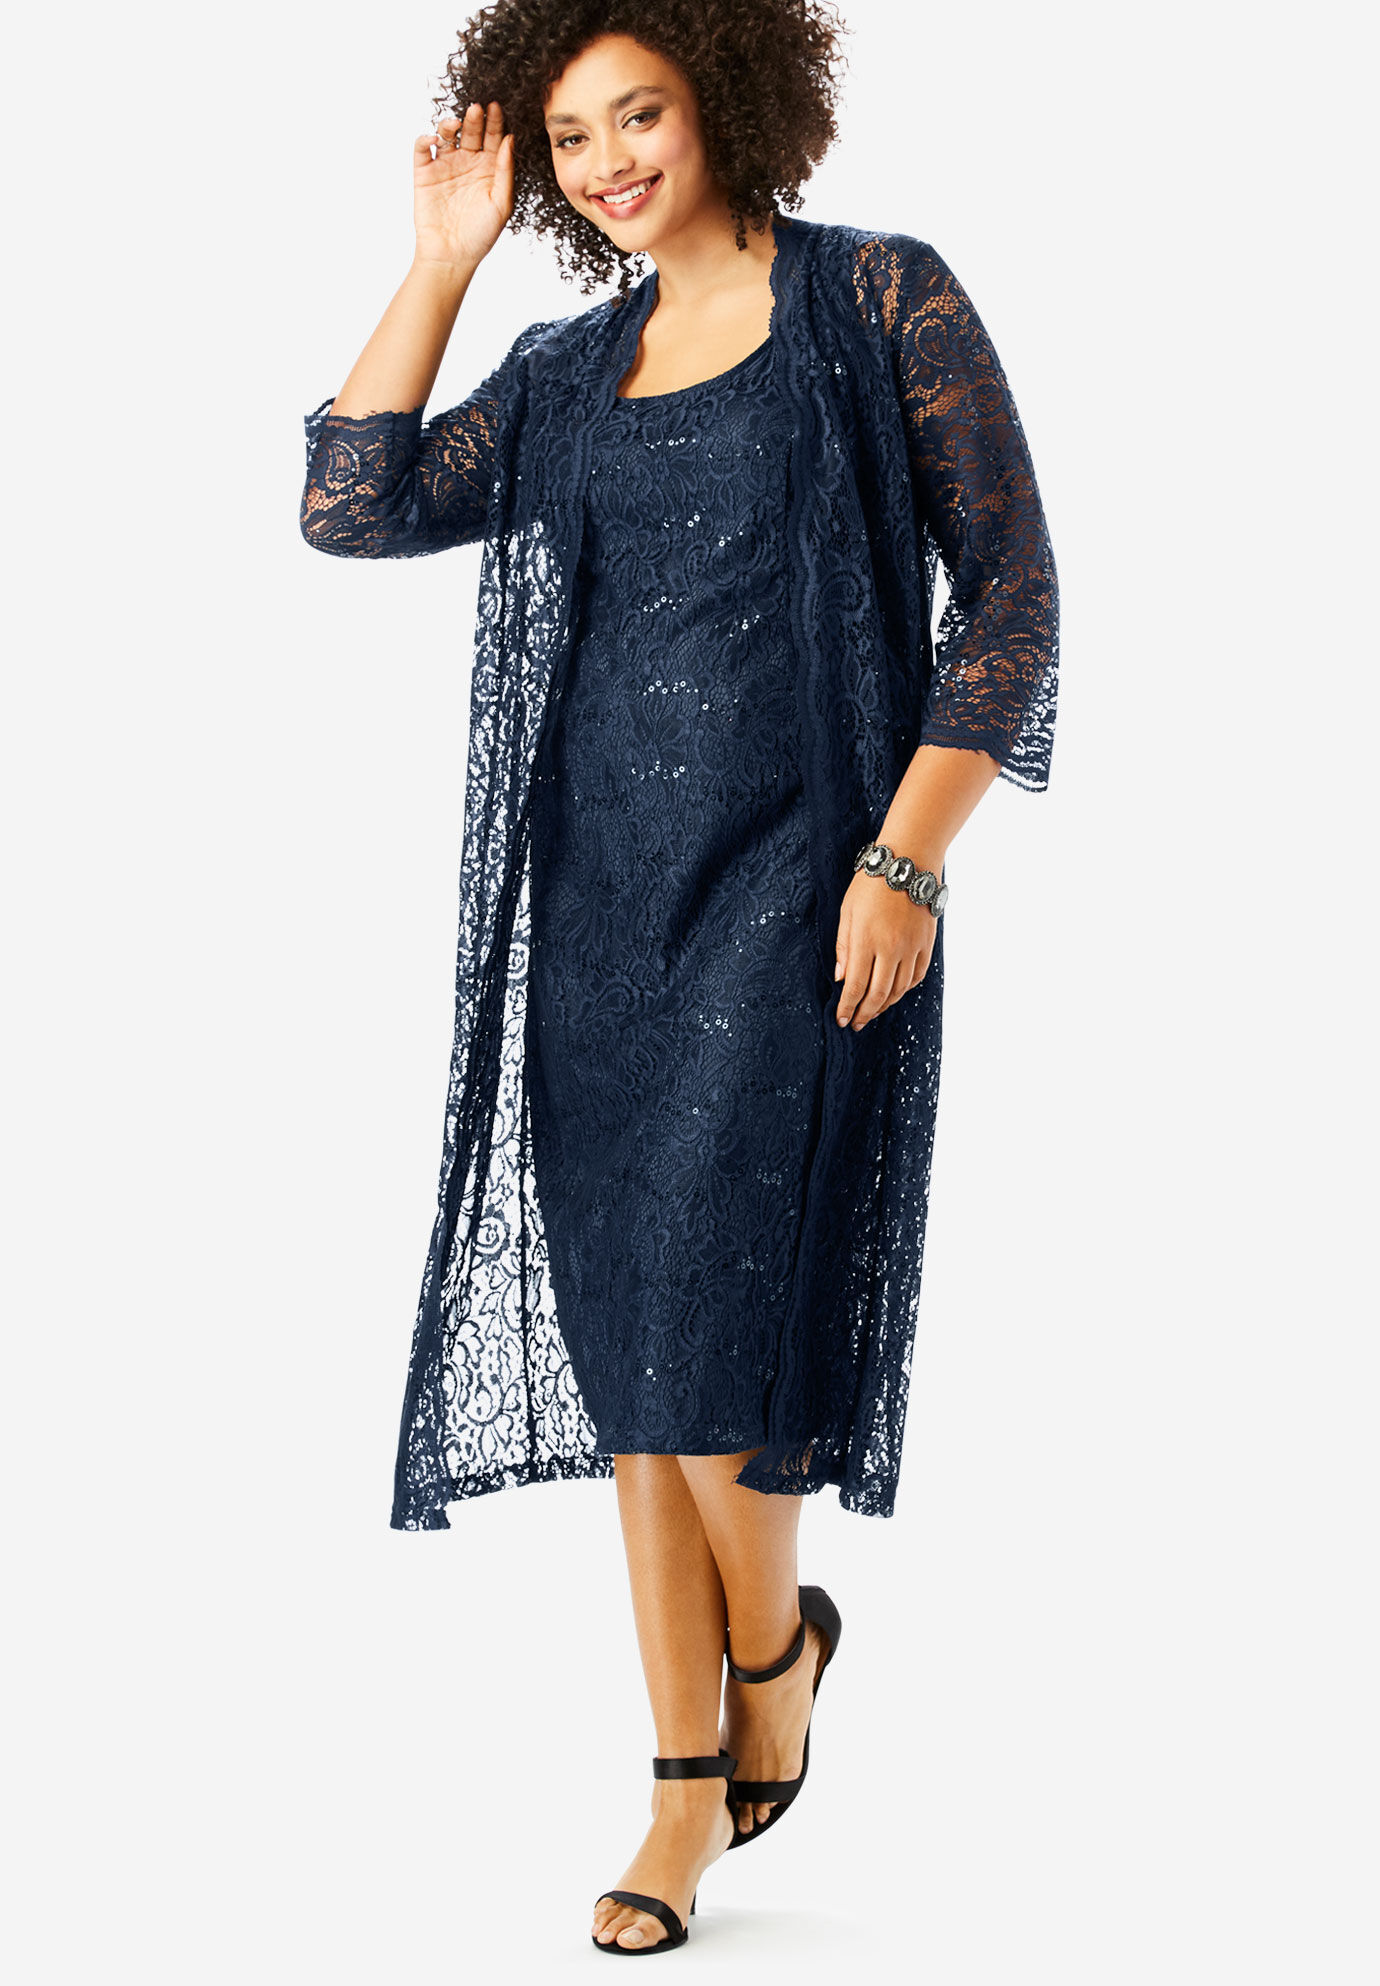 Full Length Mother of the Bride Dresses with Jackets